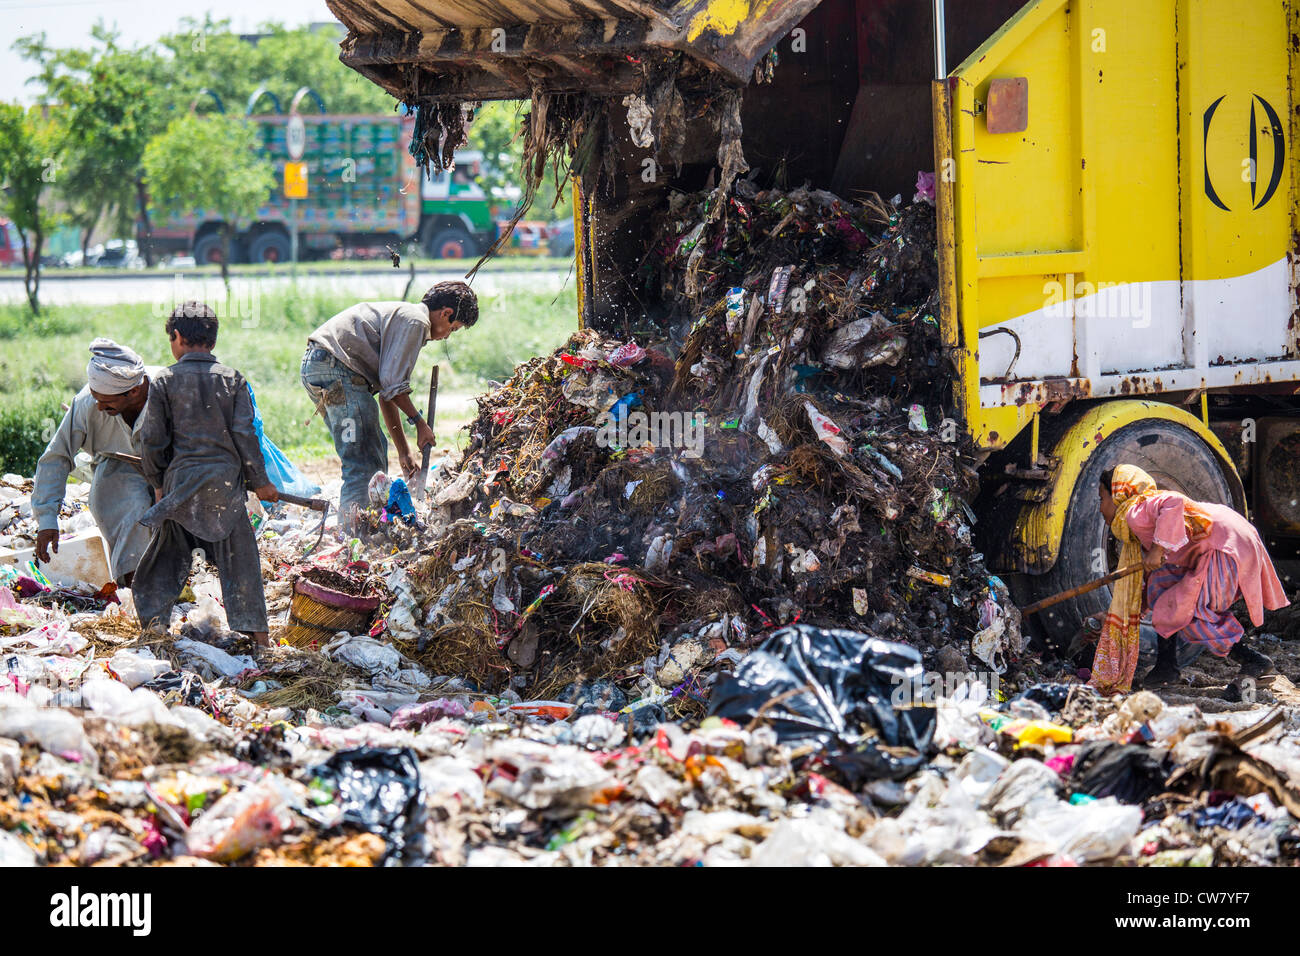 Waste pickers in Islamabad, Pakistan Stock Photo